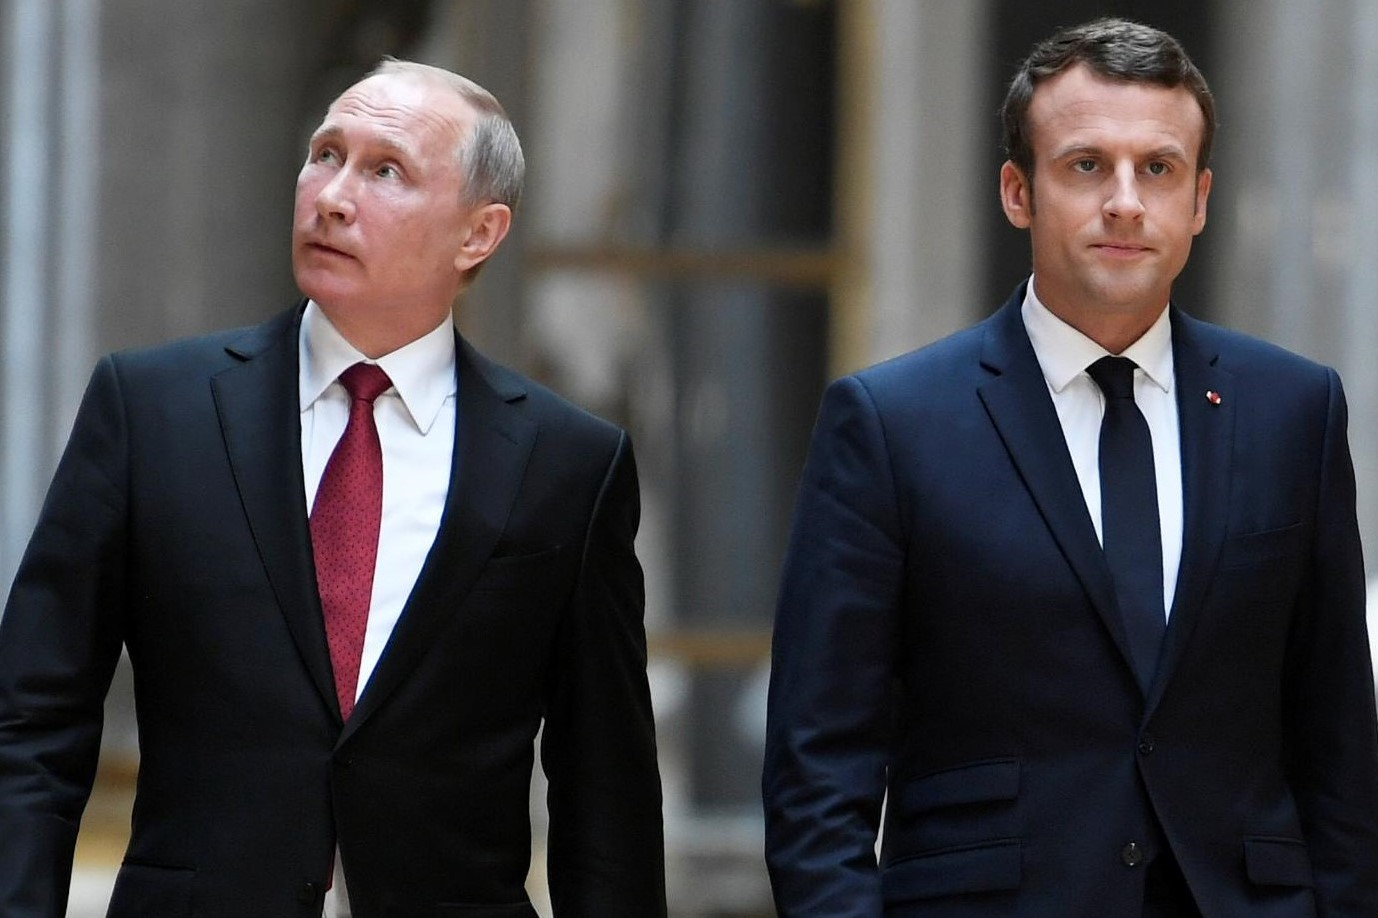 Will Macron and Putin have a meeting during the soccer match?